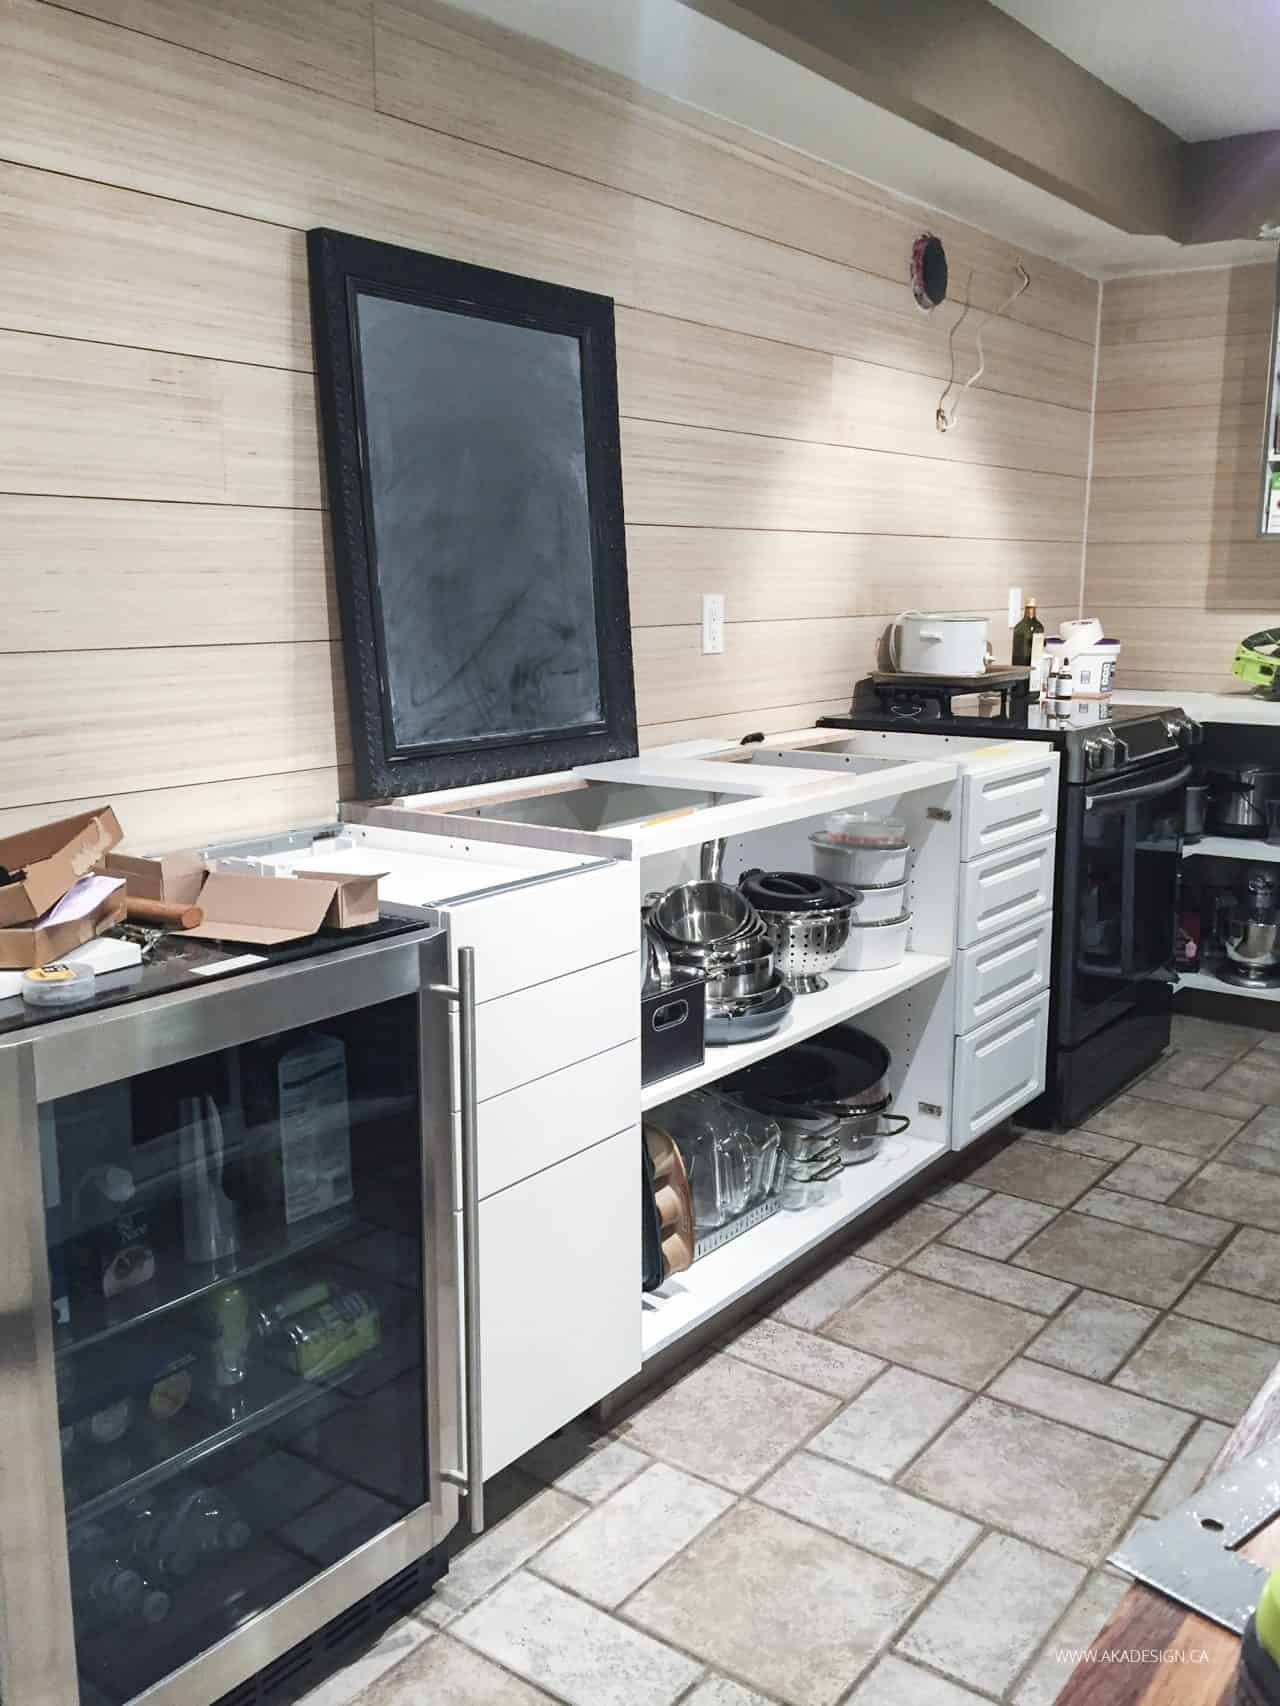 The Appliances We Chose for Our Modern Farmhouse Kitchen Makeover